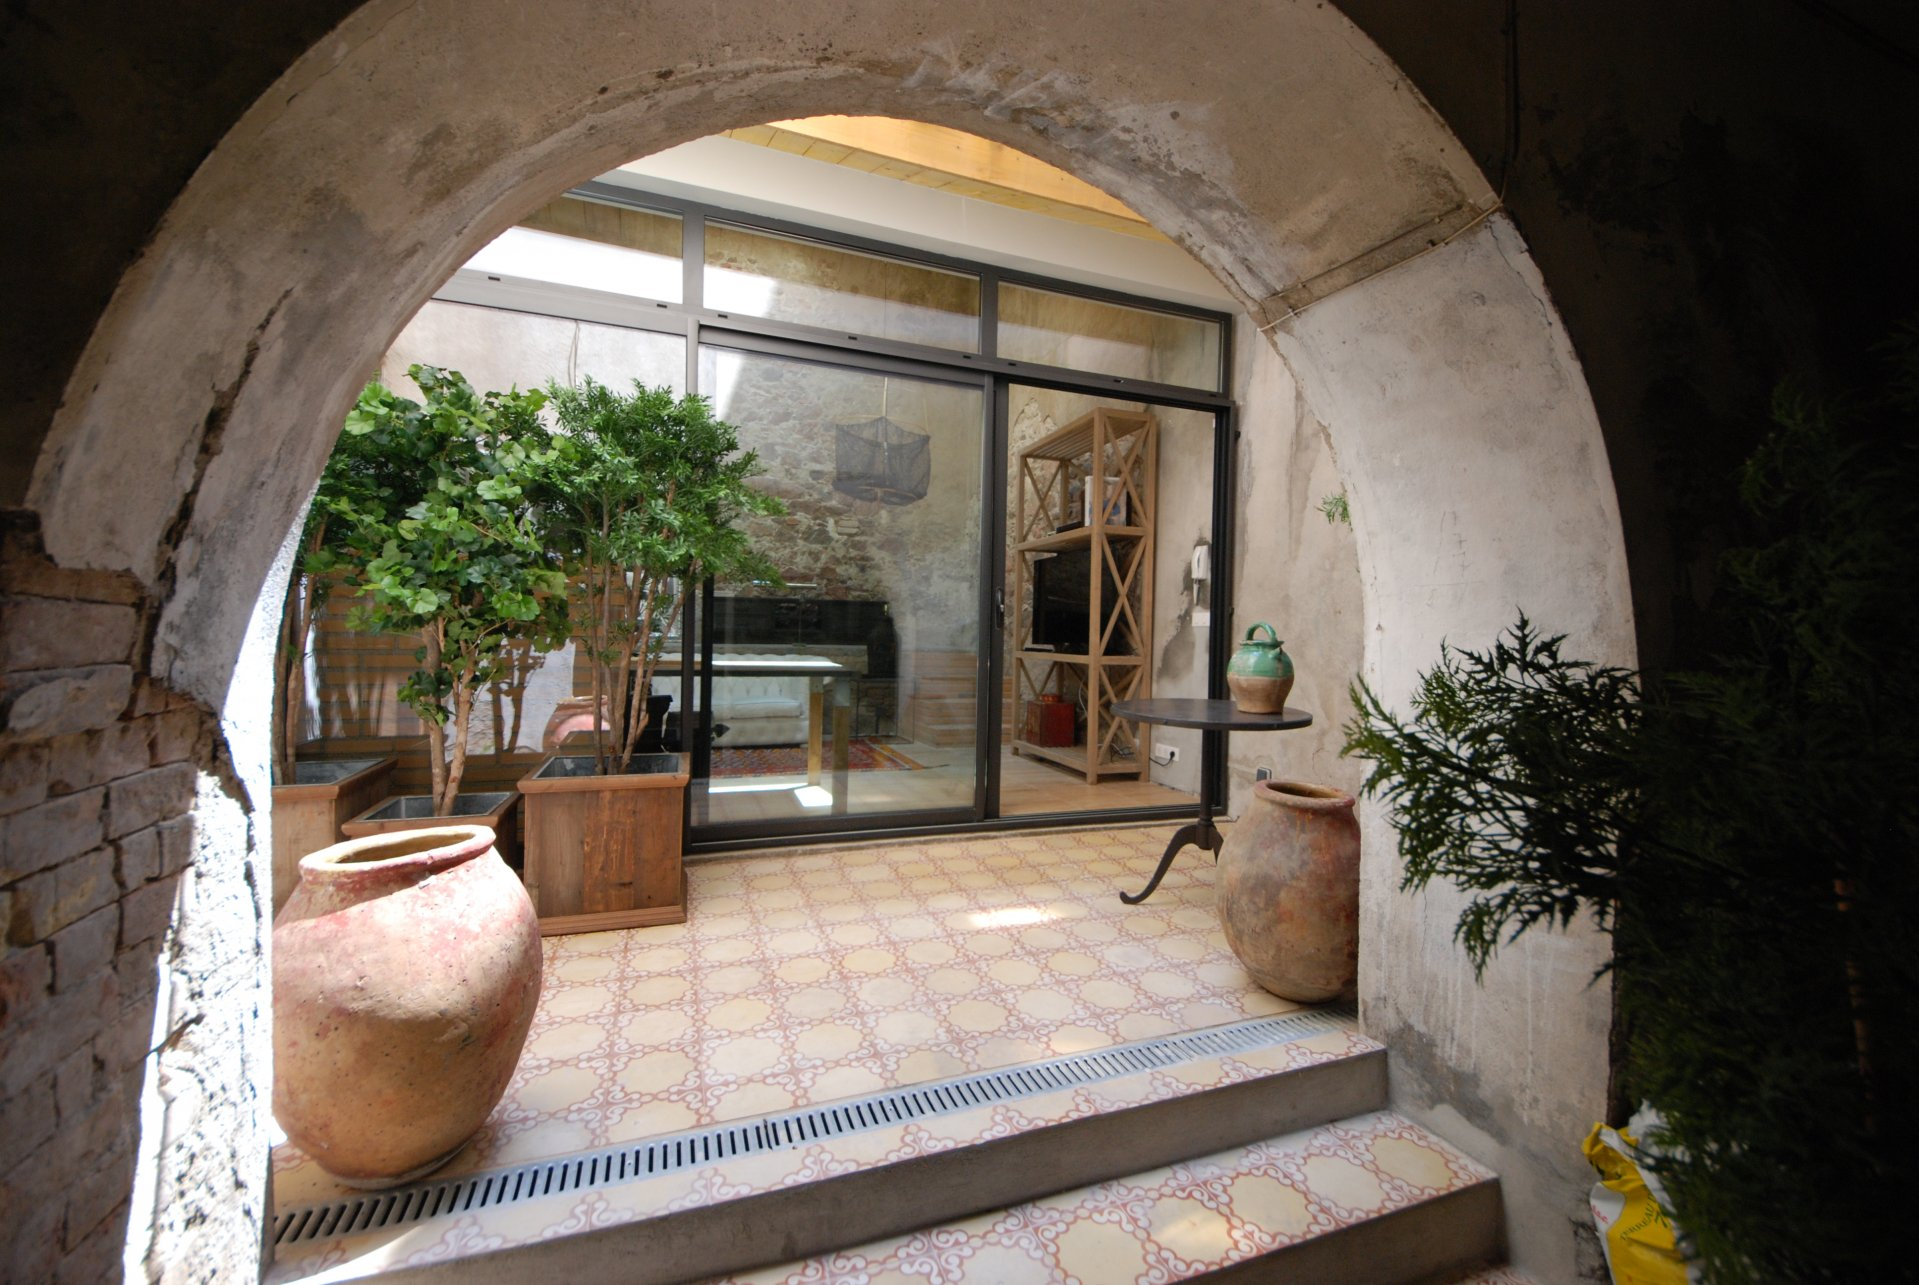 Atypical loft 200 meters from the beaches, le Suquet area in Cannes